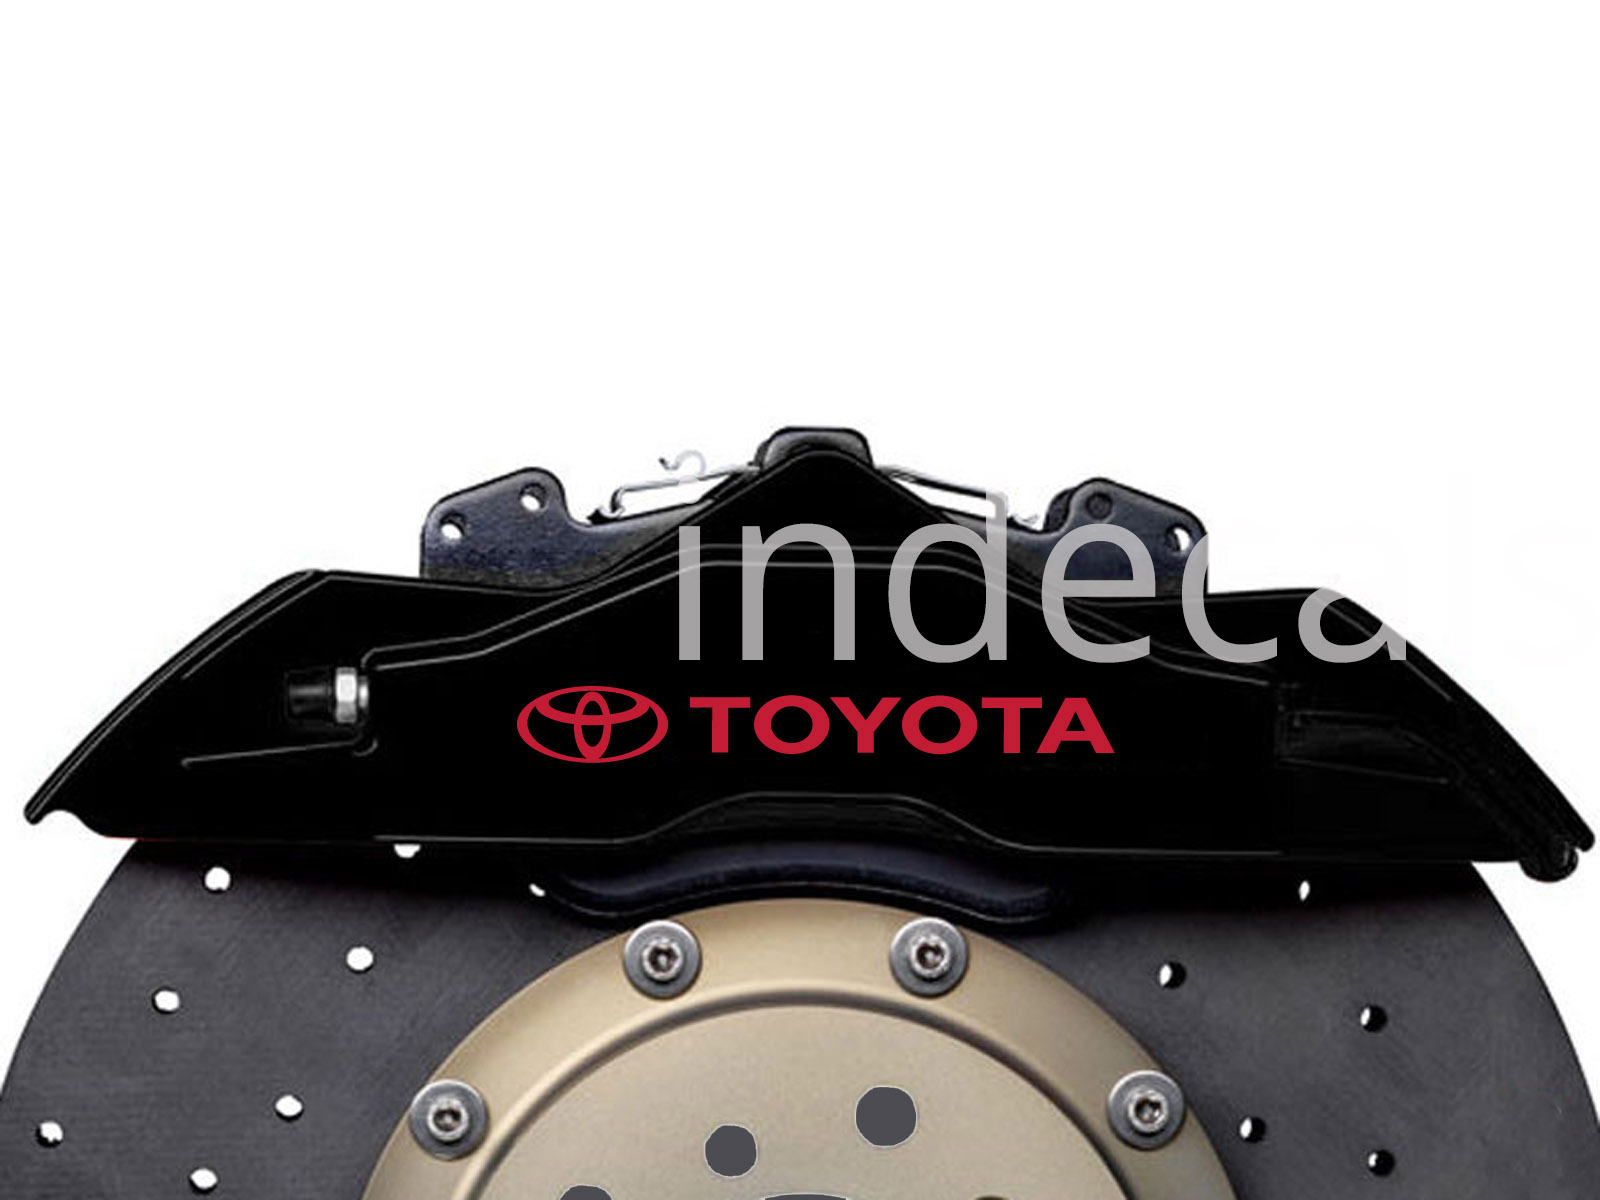 6 x Toyota Stickers for Brakes - Red